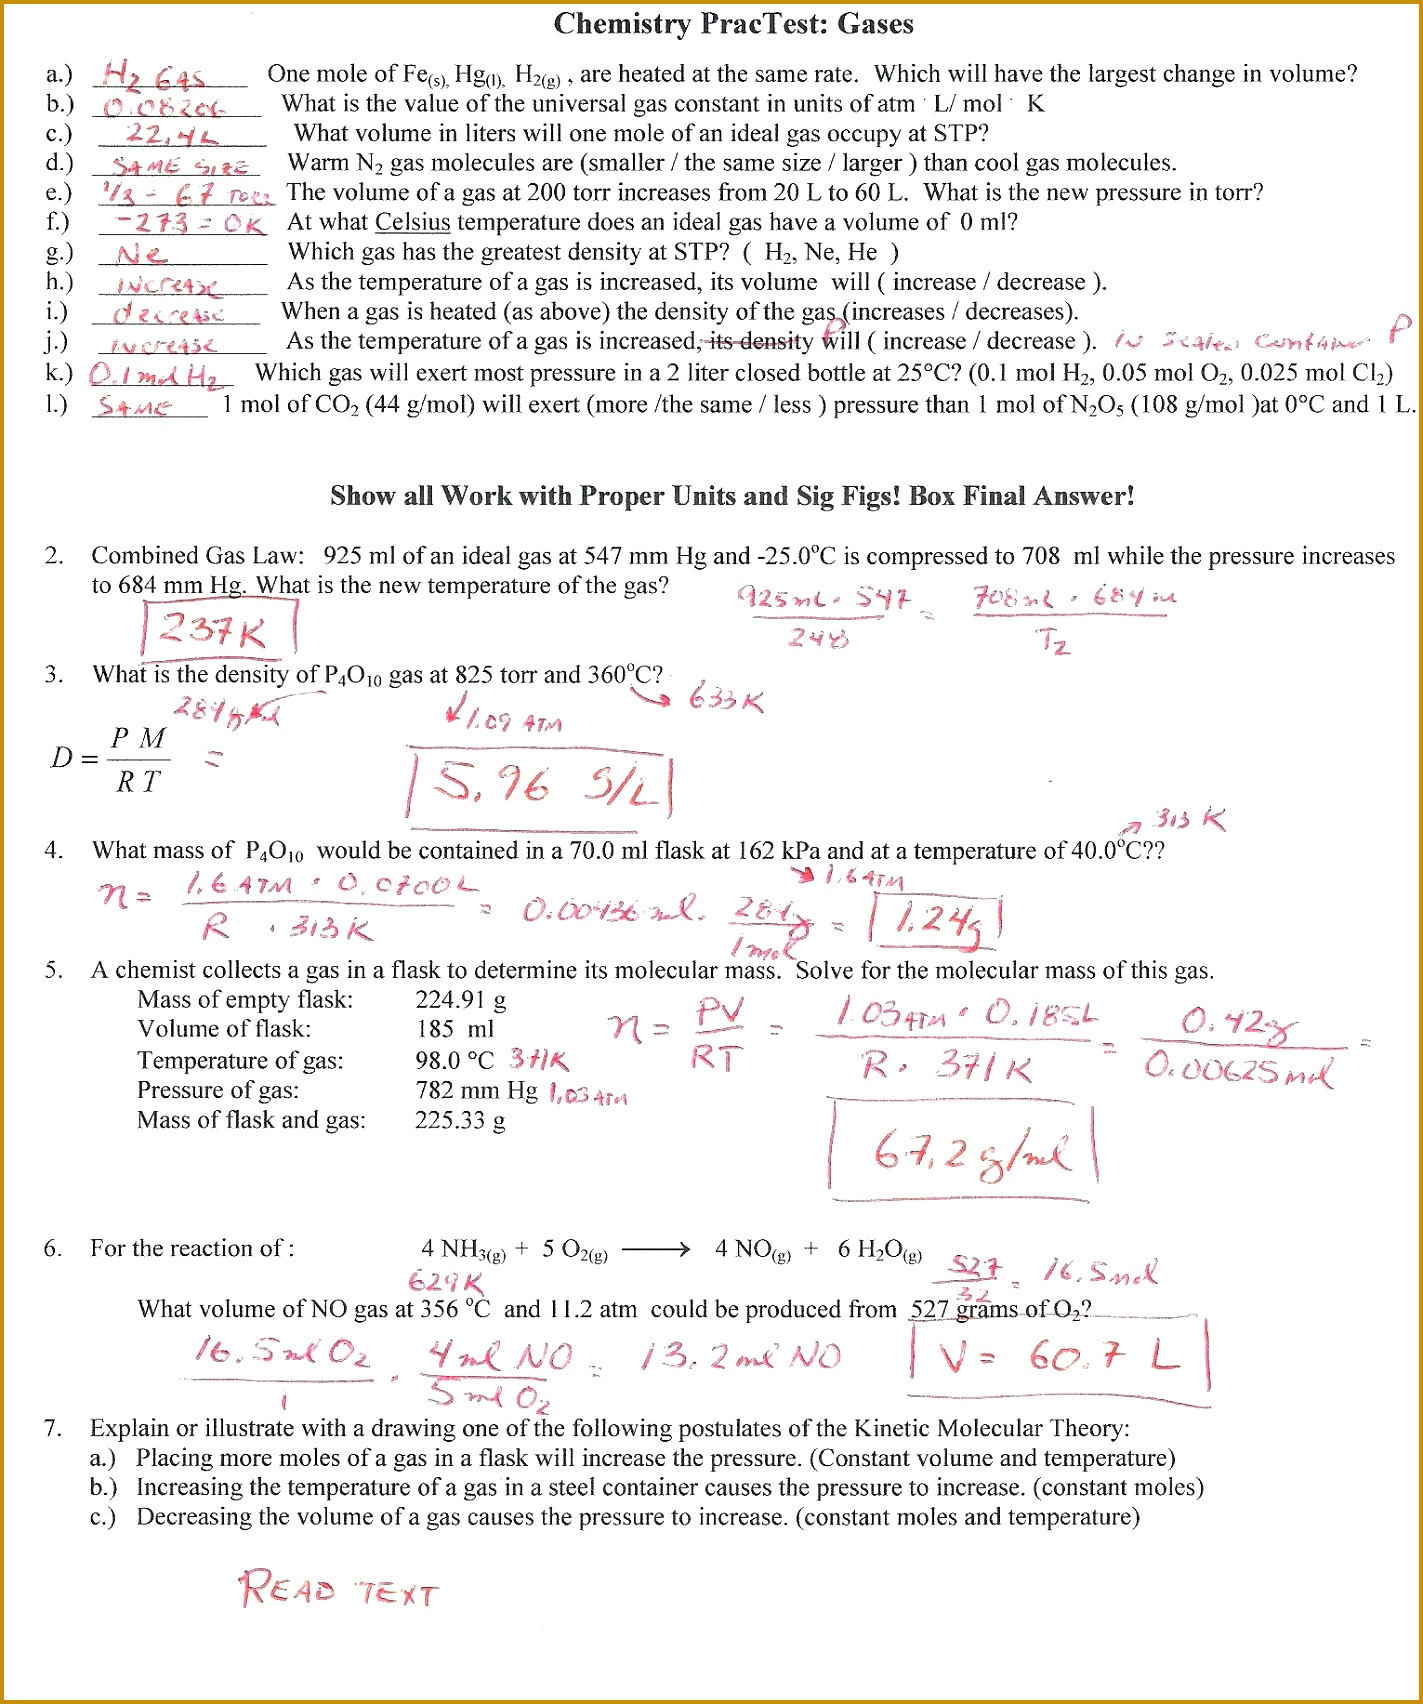 in addition  further Ideal Gas Law Worksheet Answers   Siteraven moreover 14 Best Images of Ideal Gas Law Worksheet Answer Key   Ideal Gas Law furthermore  also Gas Law Problems Worksheet with Answers Unique Ideal Gas Law besides Ideal Gases Section Review Answers also Law Worksheet With Work Shown Collection Of S Answer Key And furthermore bined Gas Law Problems Worksheet Answers and Ideal Gas Law further 4 Ideal Gas Law Worksheet   FabTemplatez together with Ideal Gas Law Worksheet With Answers   Oaklandeffect likewise  besides IDEAL GAS LAW PRACTICE PROBLEMS   How to Solve Ideal Gas Law moreover Ideal Gas Law Worksheet Answer Key New Chemistry Ideal Gas Law besides ideal gas law problems worksheet   Siteraven also 23 Elegant  bined Gas Law Worksheet Answer Key   College Test Prep. on ideal gas law worksheet answers